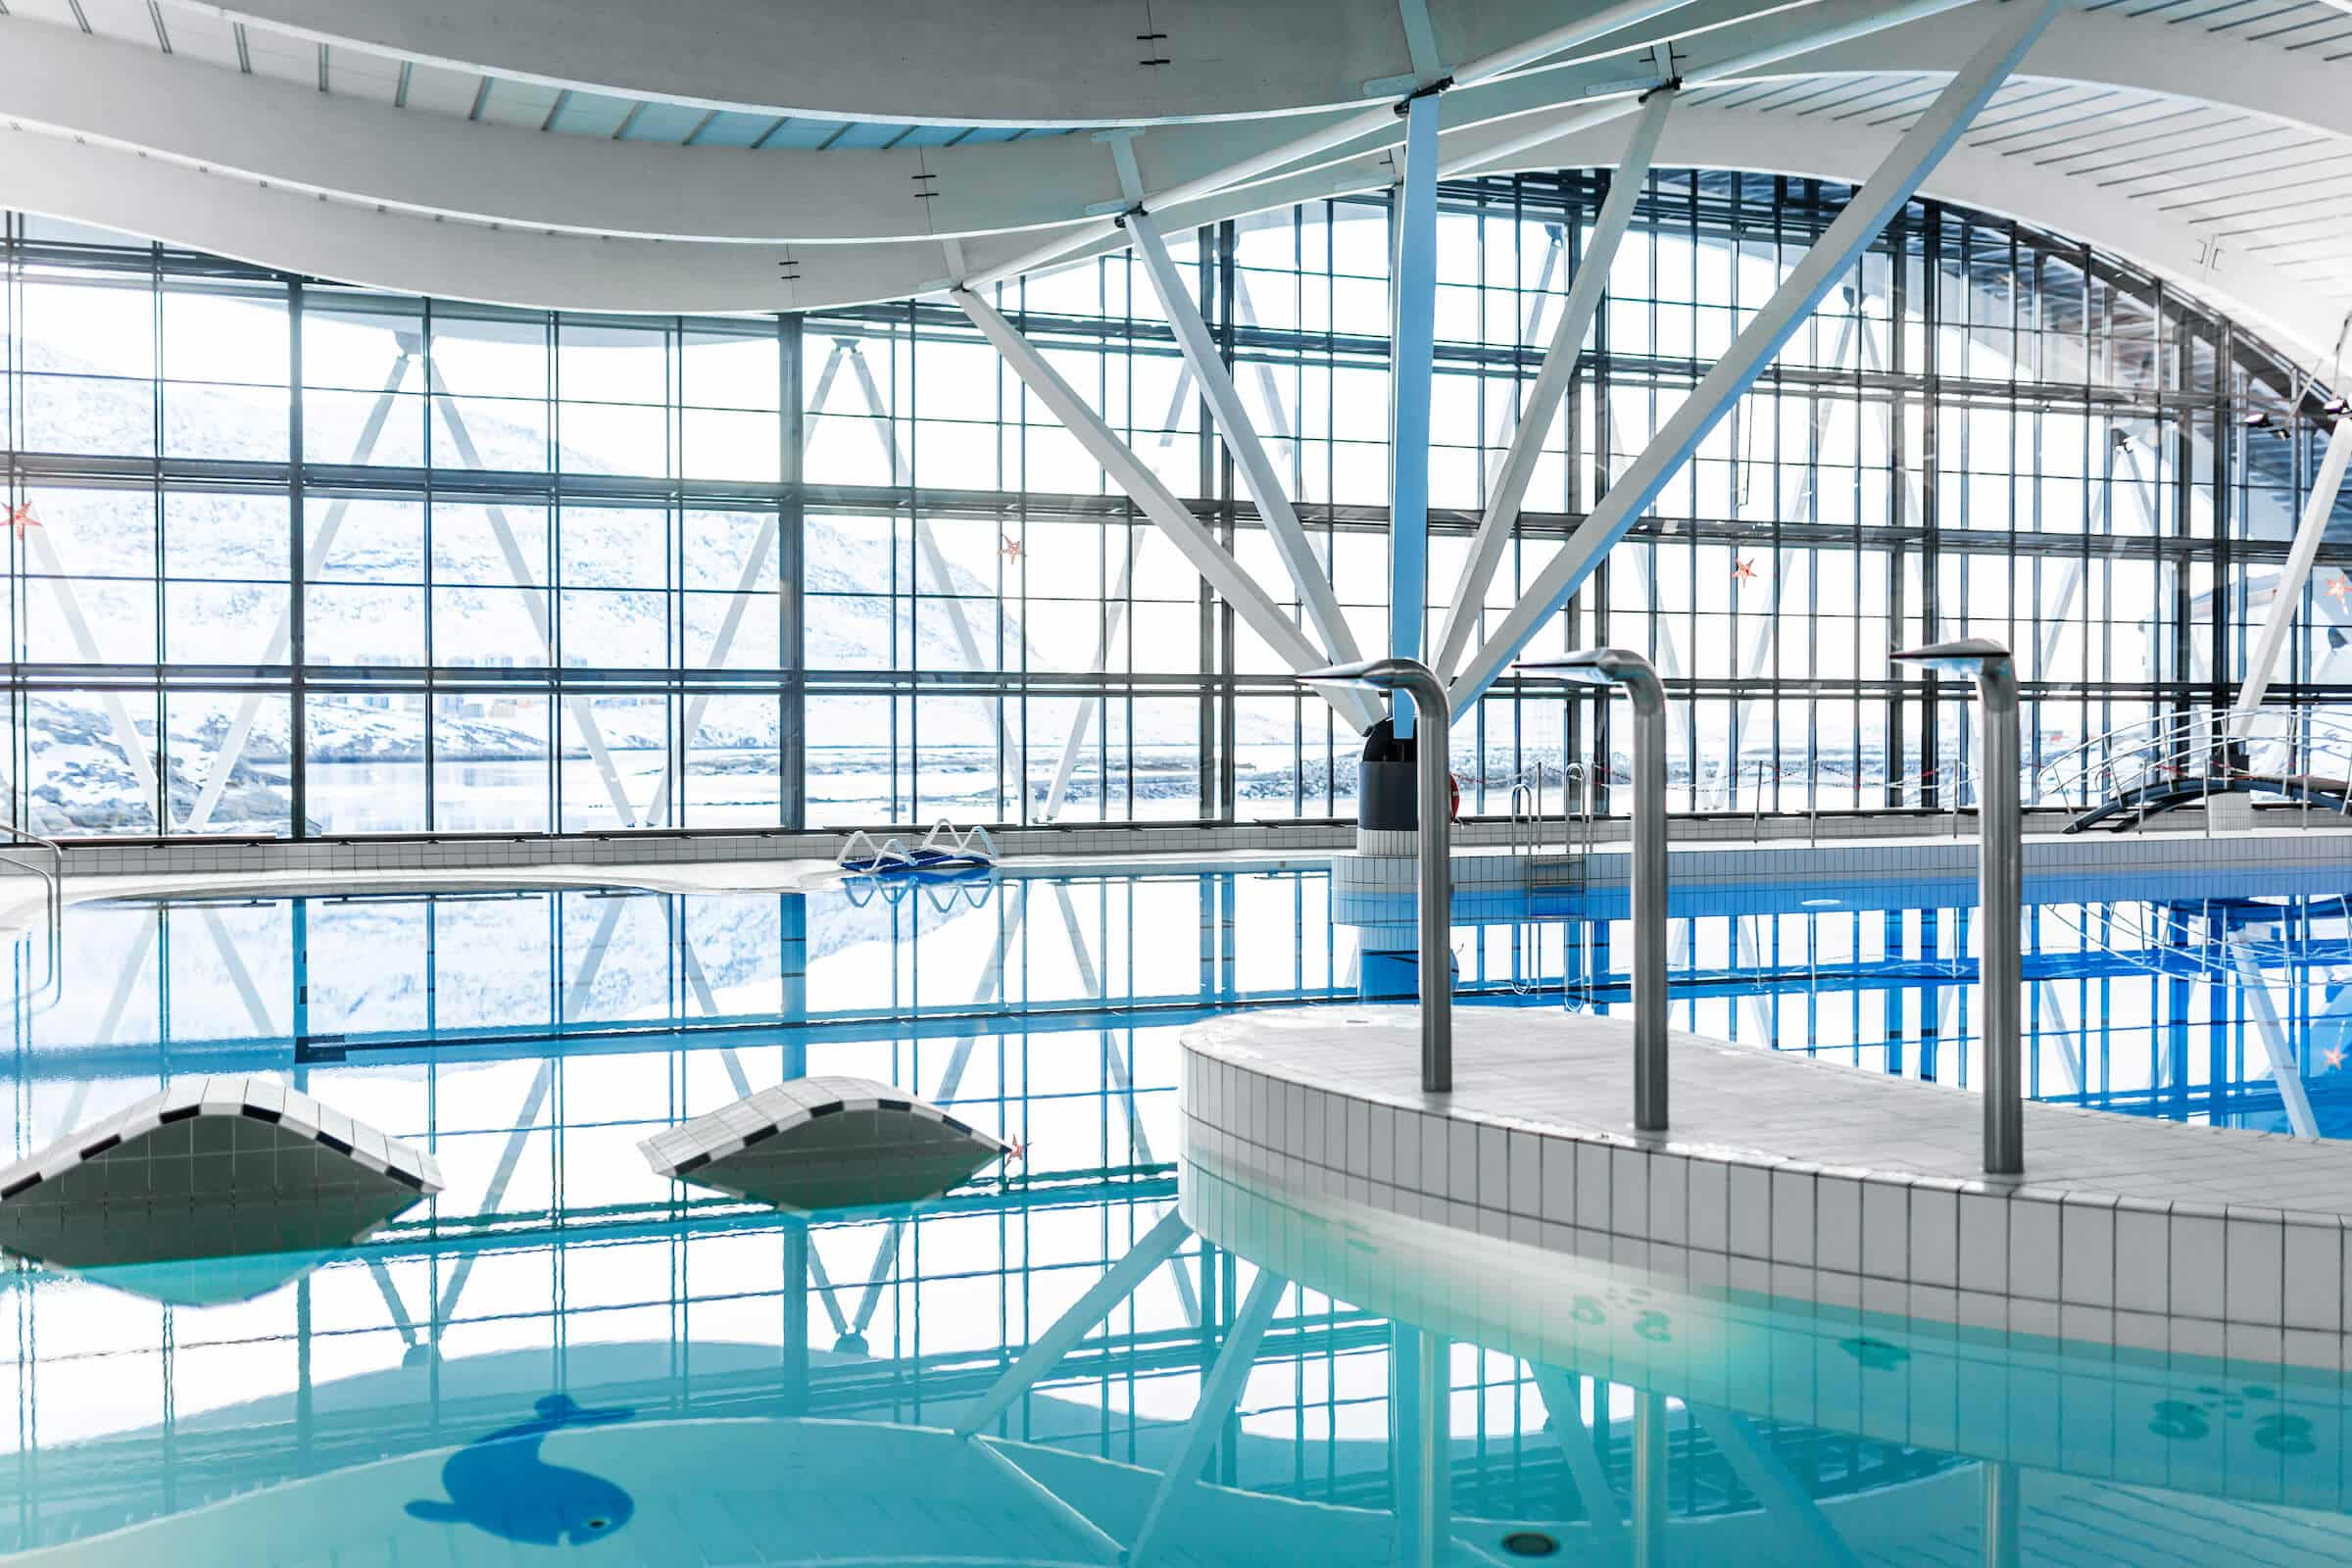 Architecture - Interior of the indoor swimmingpool Malik in Nuuk in Greenland, by Rebecca Gustafsson